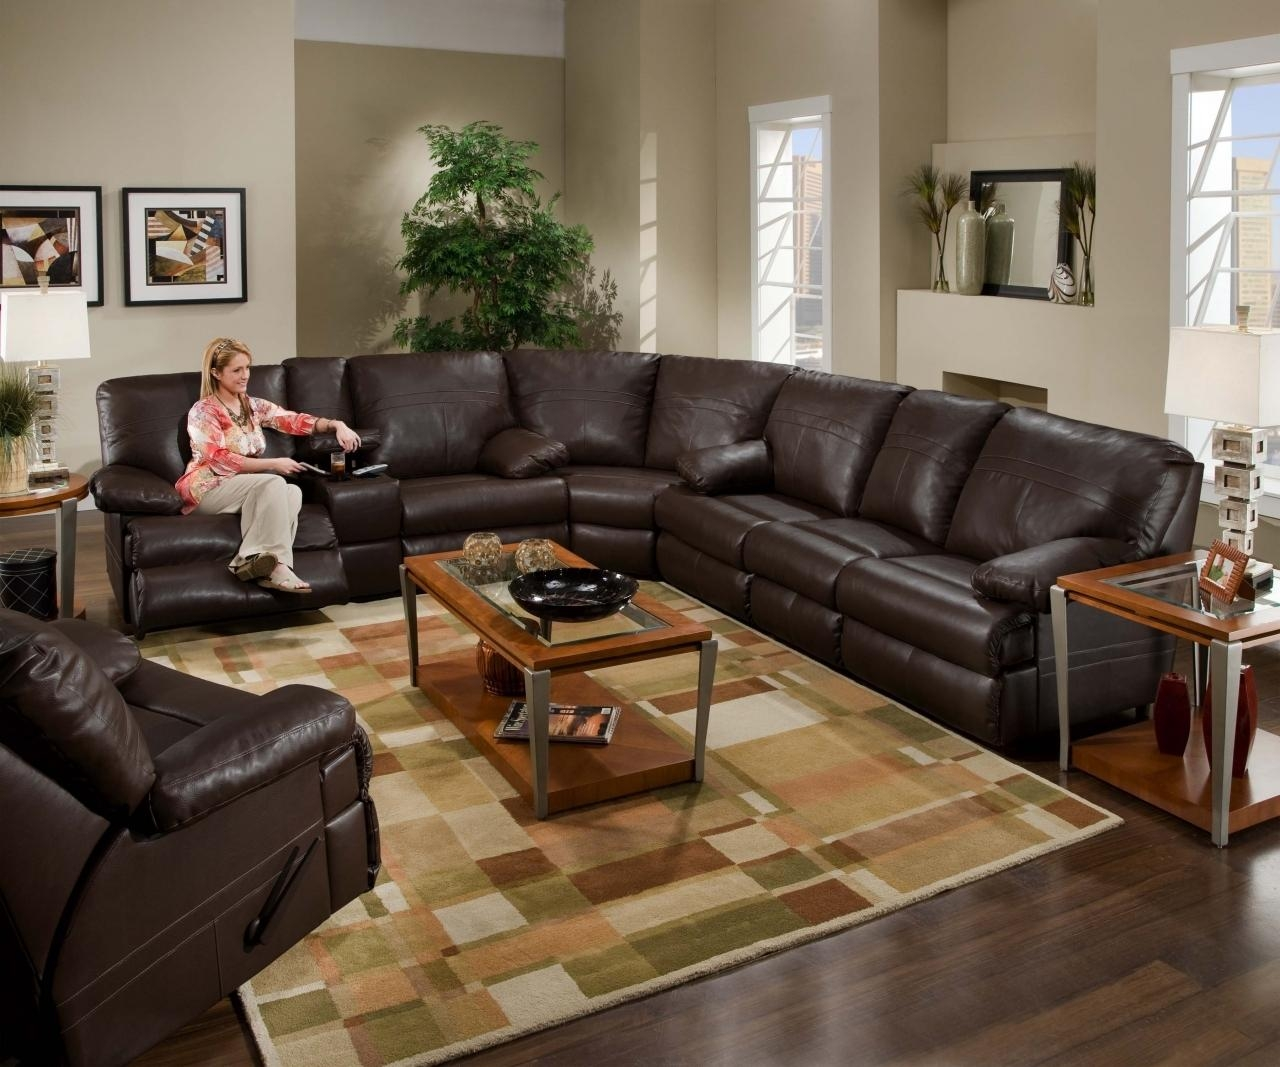 Big Sofa In A Small Room 20 Best Ideas Large Leather Sectional Sofa Ideas